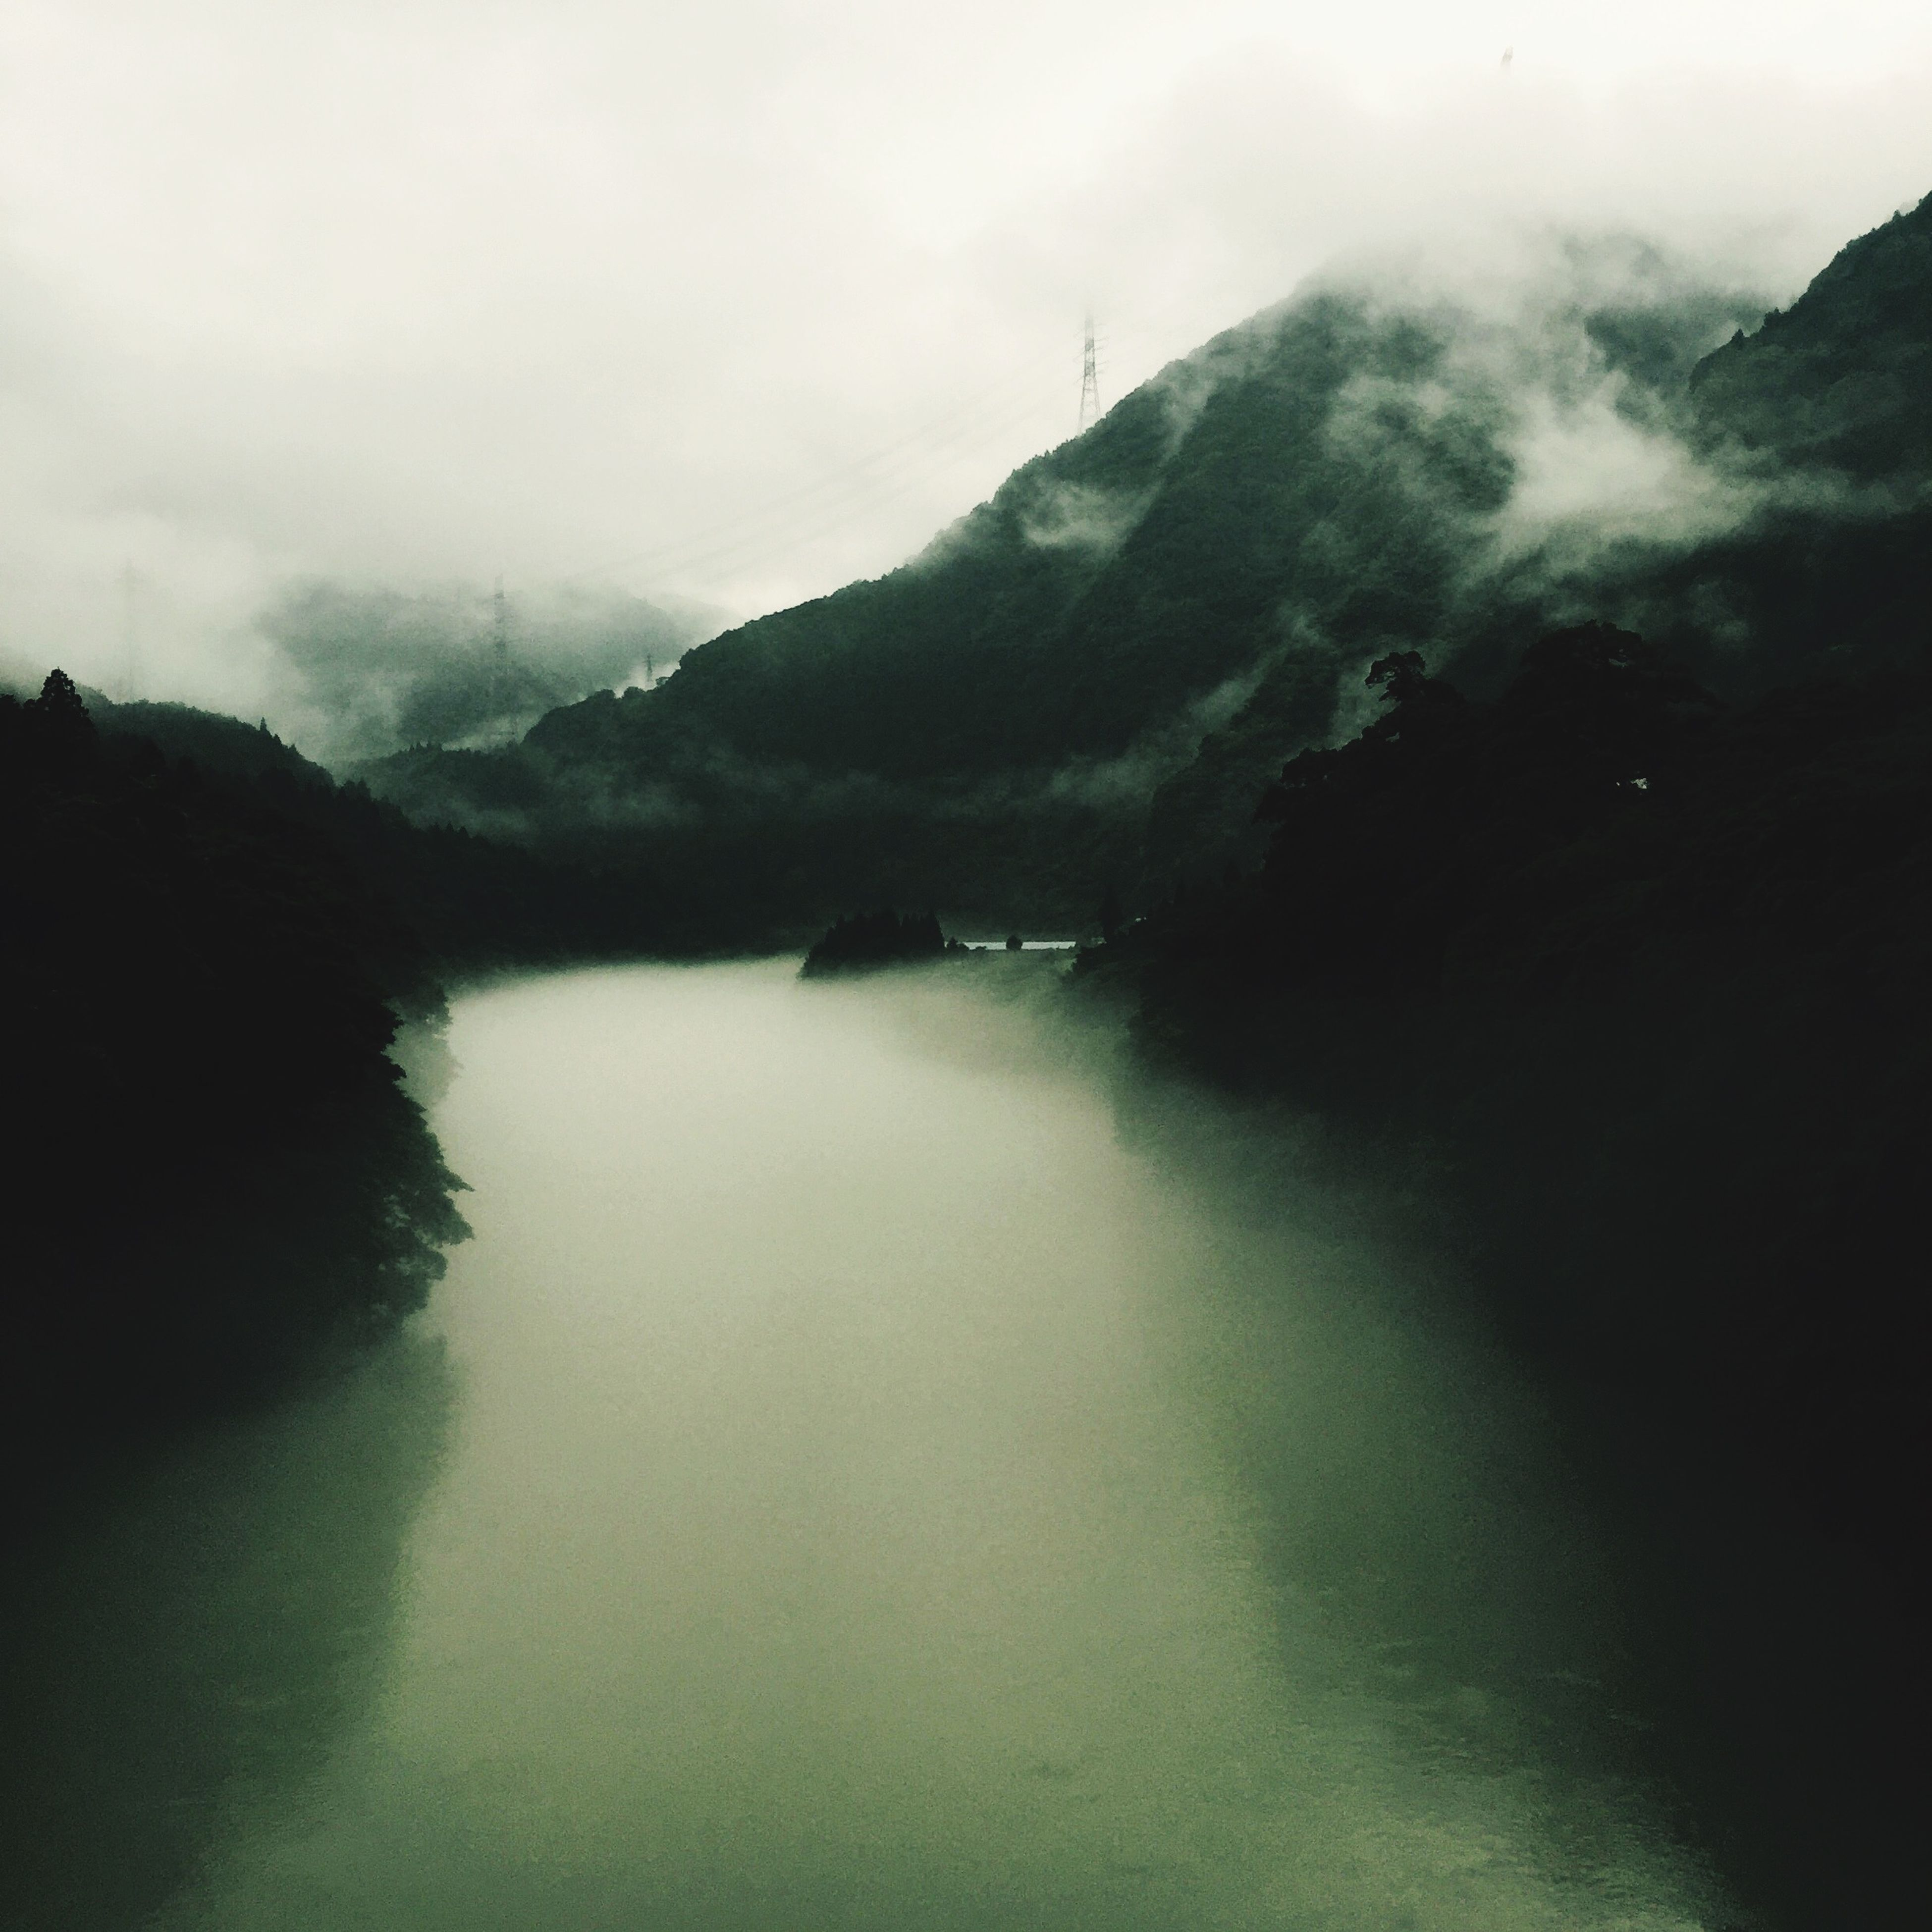 mountain, tranquil scene, tranquility, scenics, water, mountain range, beauty in nature, lake, nature, fog, sky, waterfront, non-urban scene, idyllic, river, weather, reflection, landscape, outdoors, remote